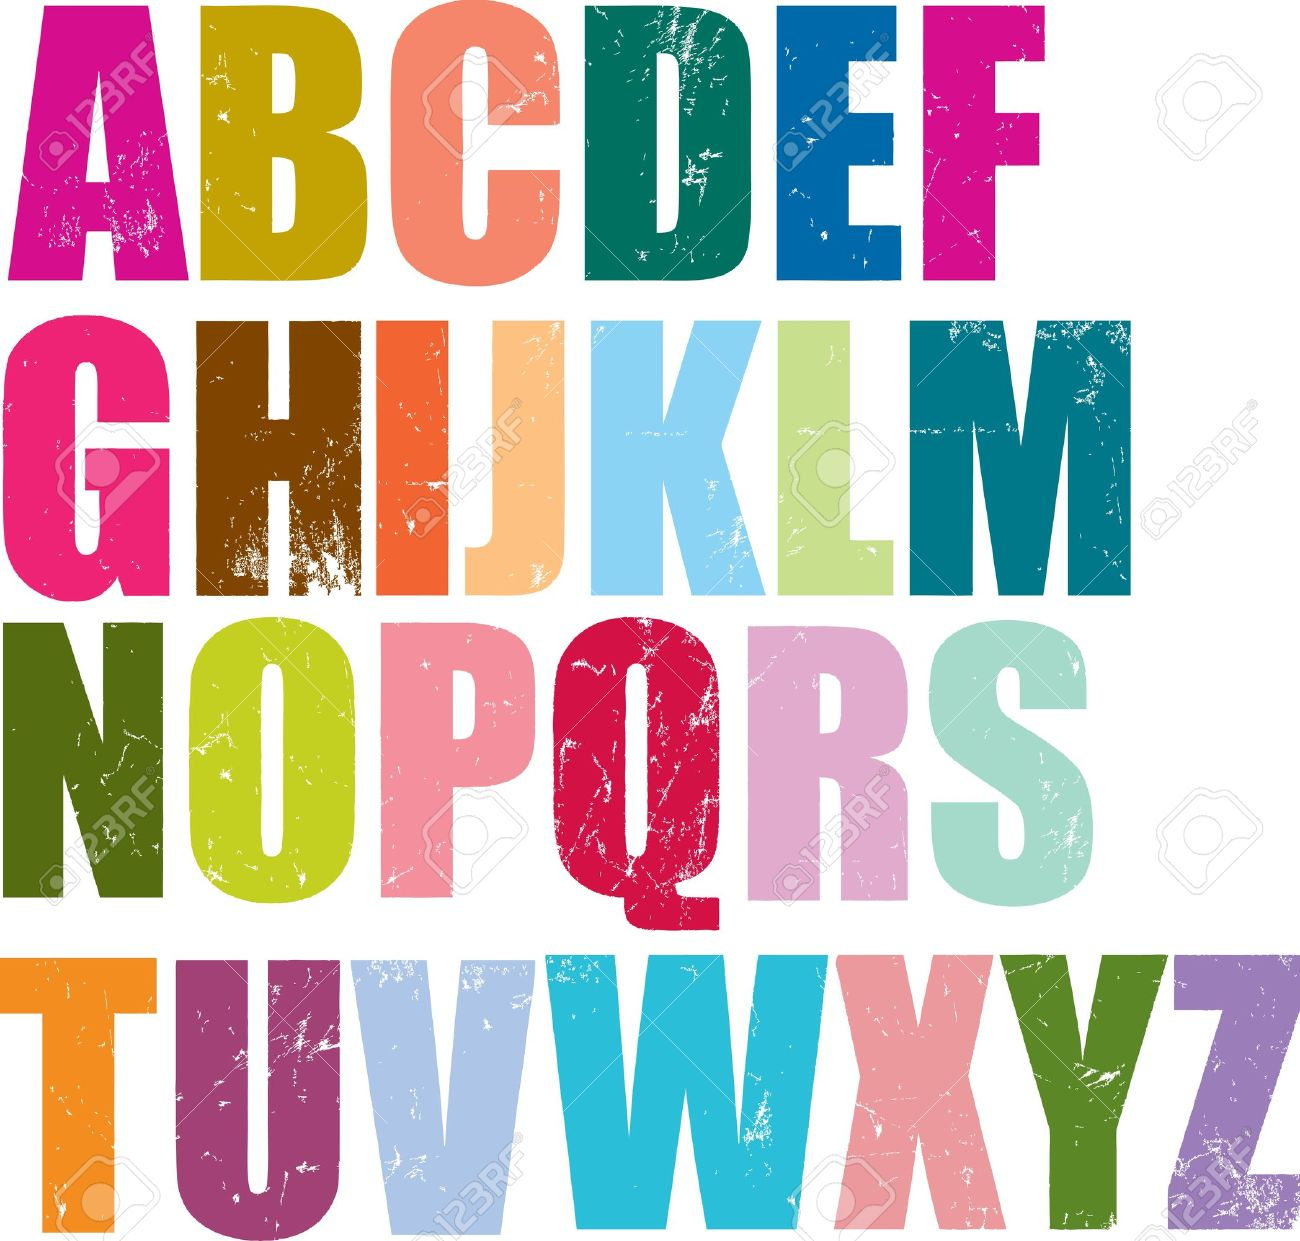 Individual Letterpress Letters Of The Whole English Alphabet.